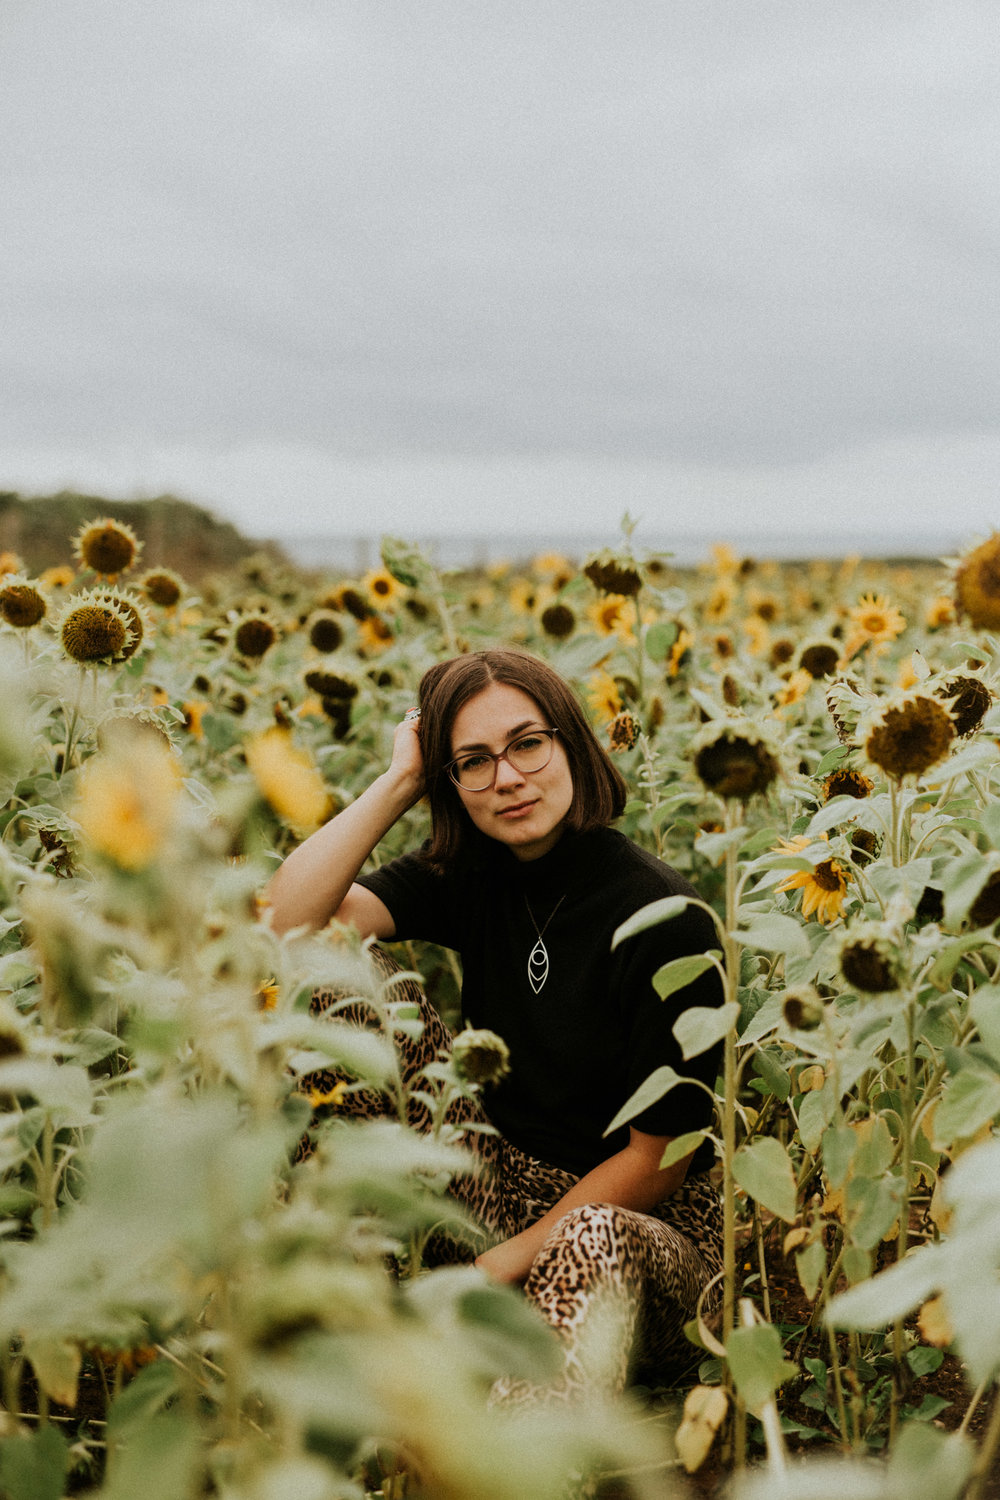 sunflowers-9.jpg